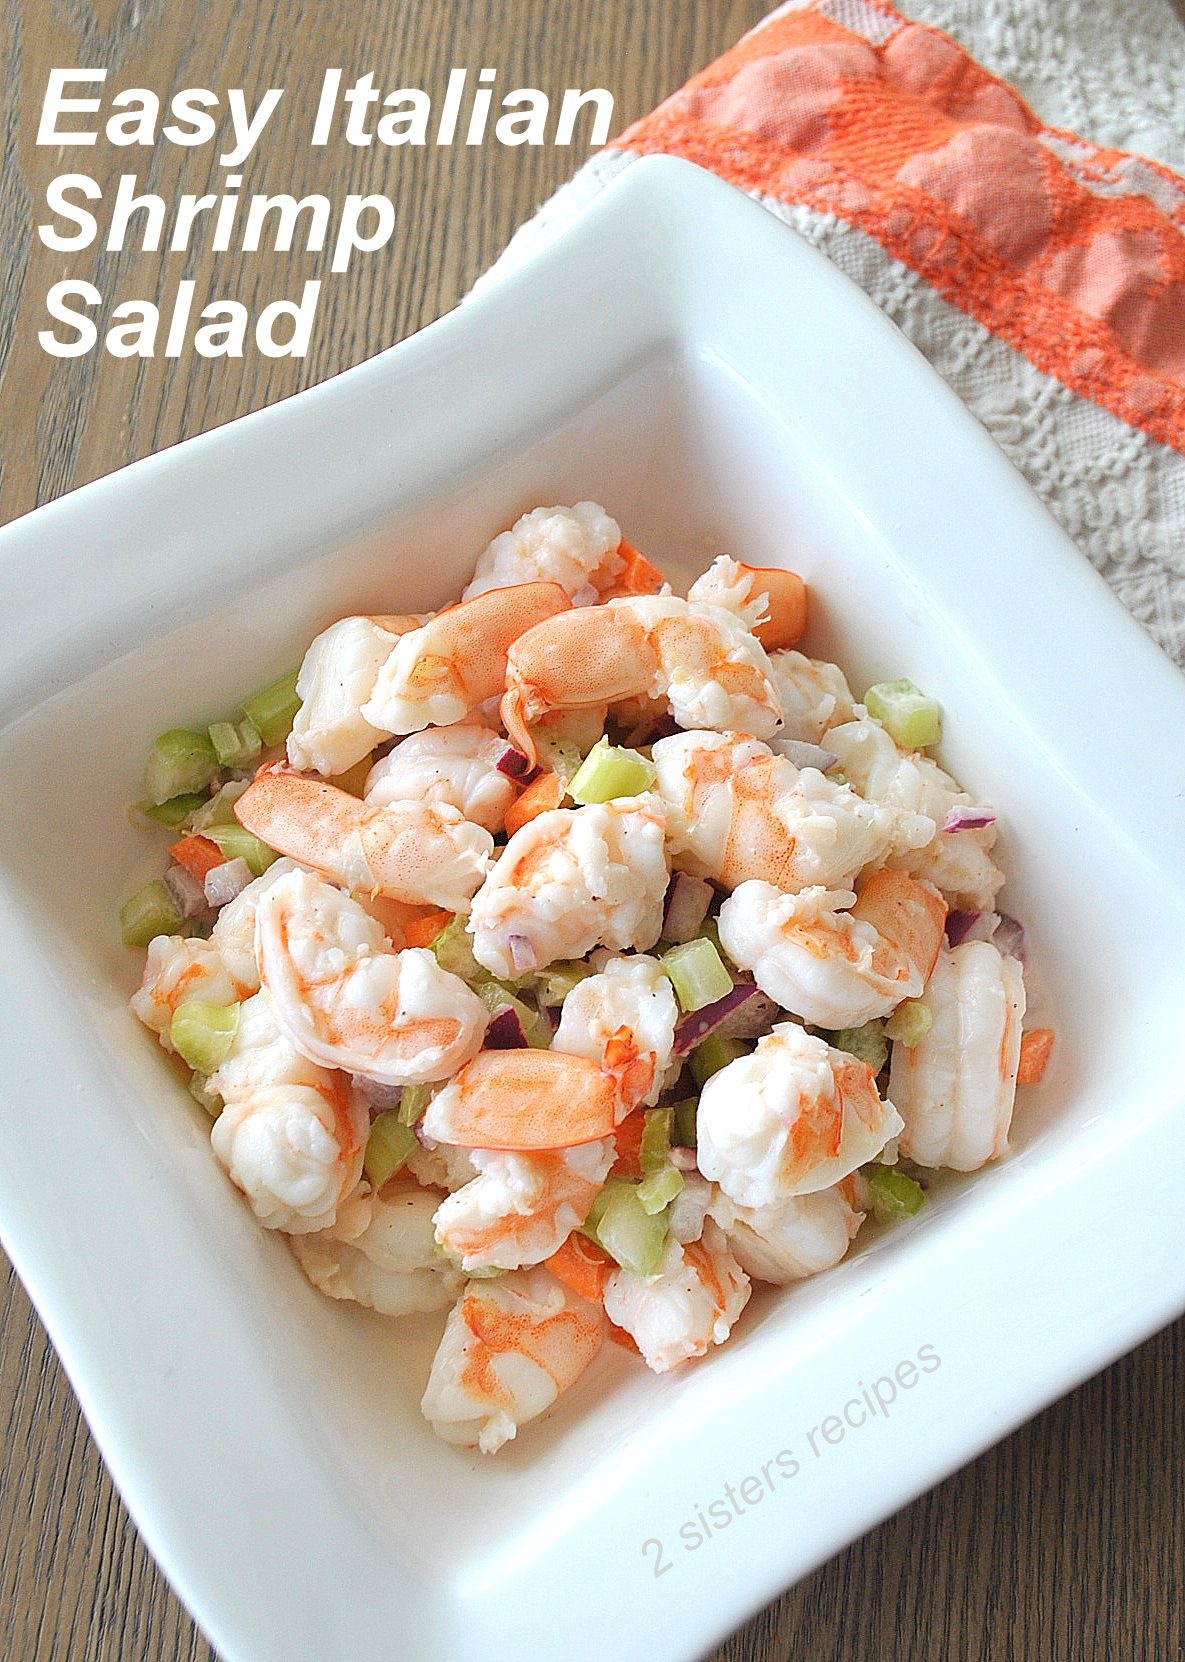 Easy Italian Shrimp Salad #seafooddishes